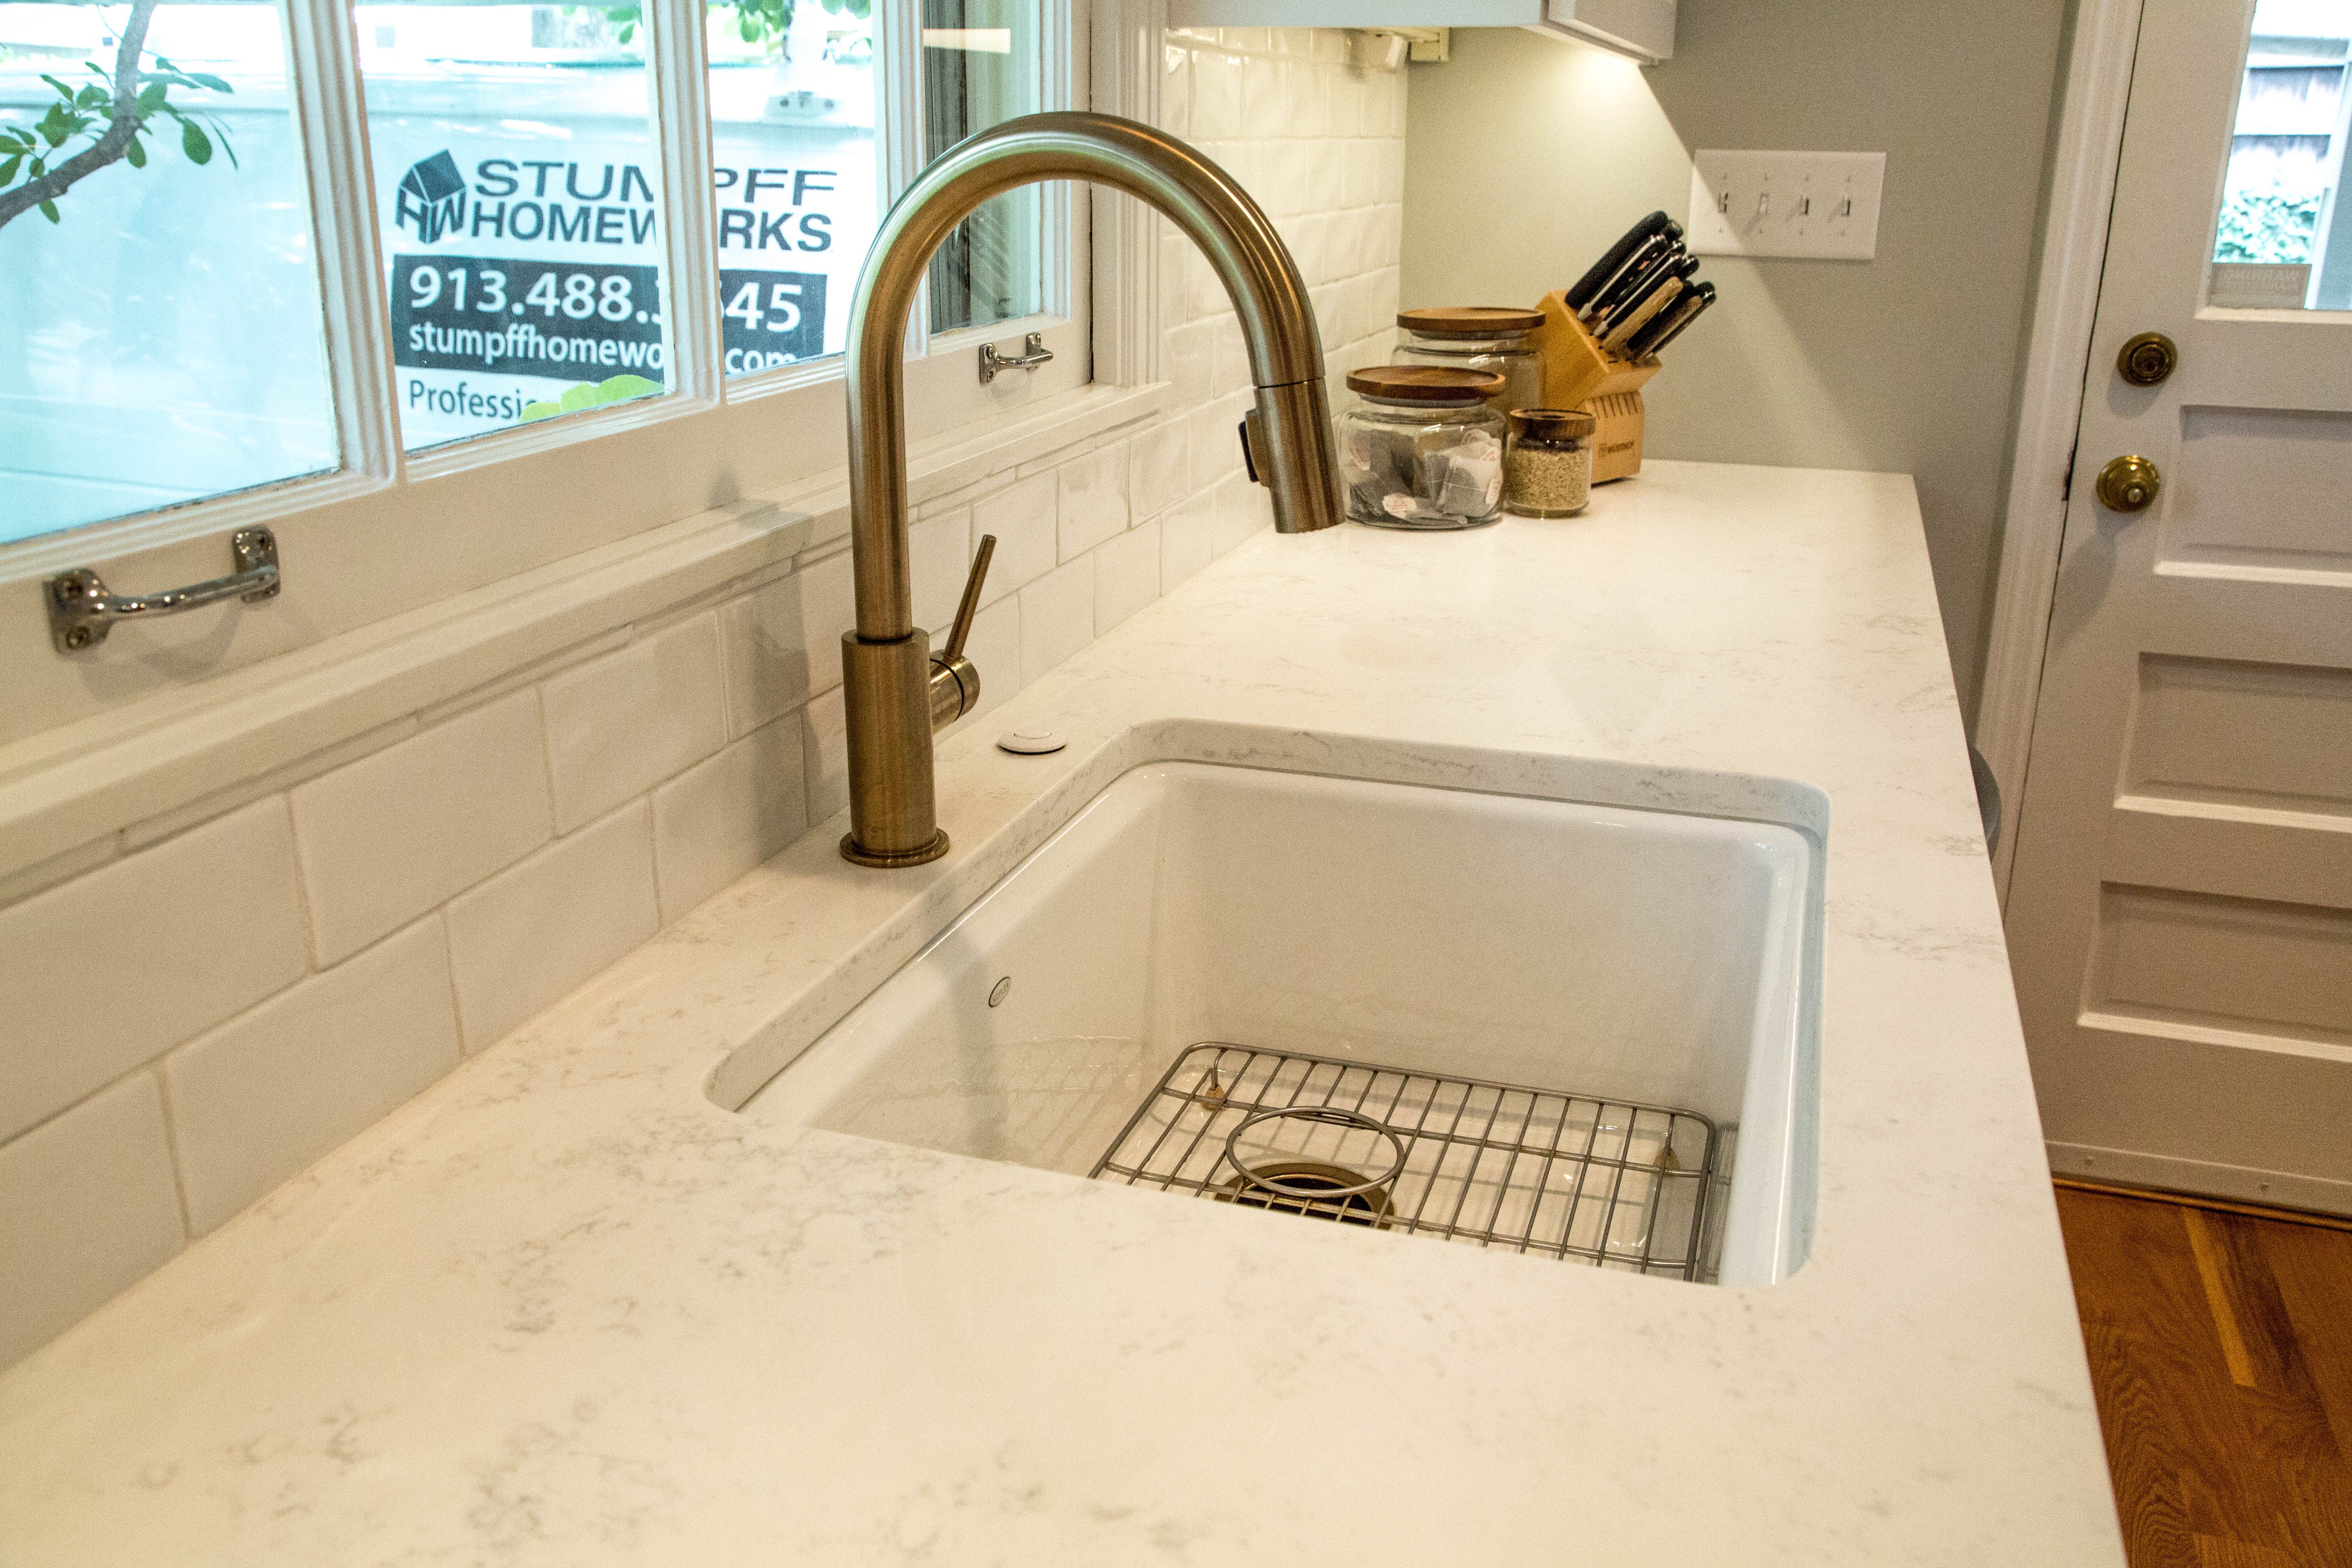 isn plans series part kitchen and faucets this beautiful trinsic bronze finalized appliances source finally faucet in hardware of final champagne t deltatrinsic iii delta the